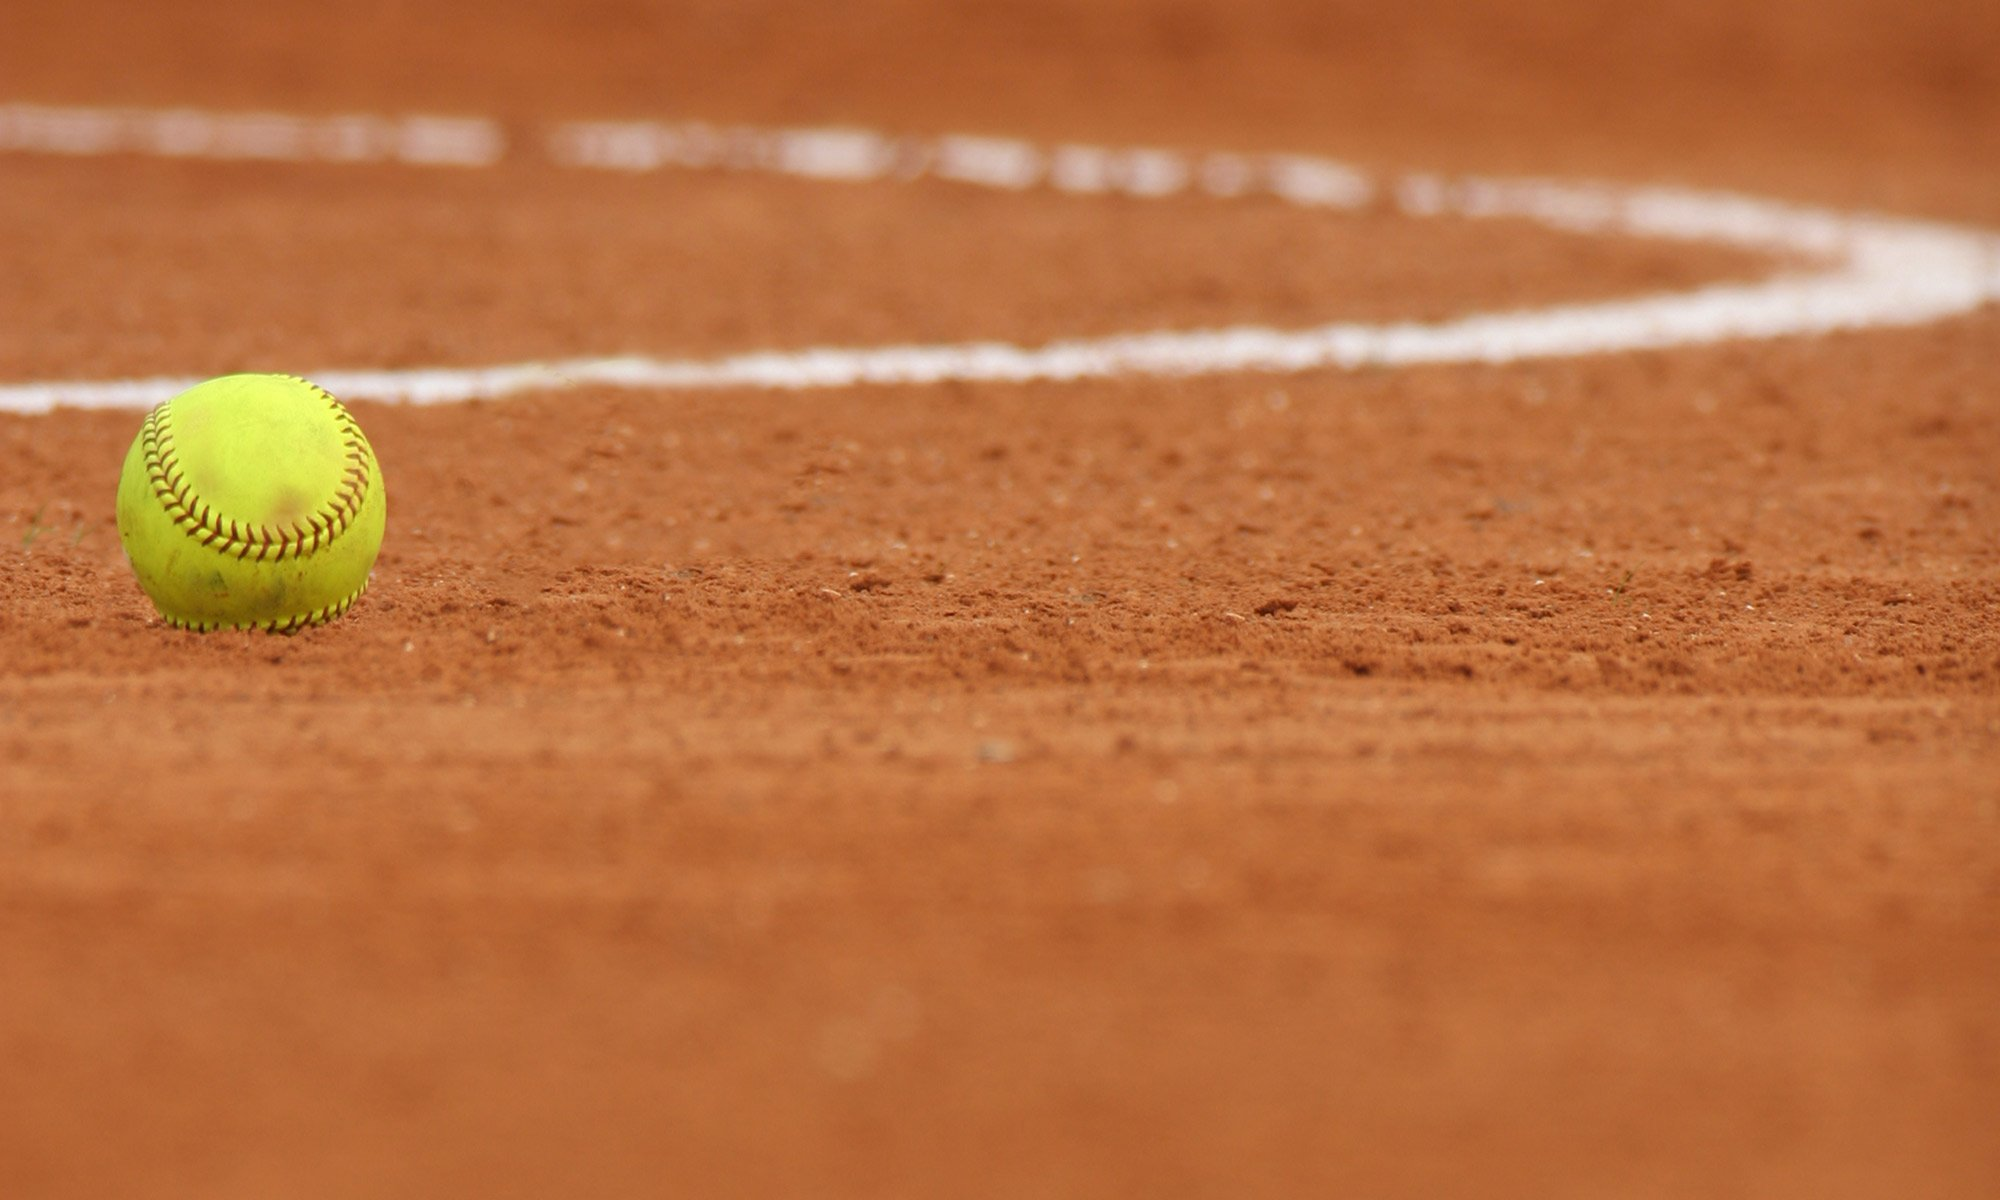 Softball Field Backgrounds Images Pictures   Becuo 2000x1200